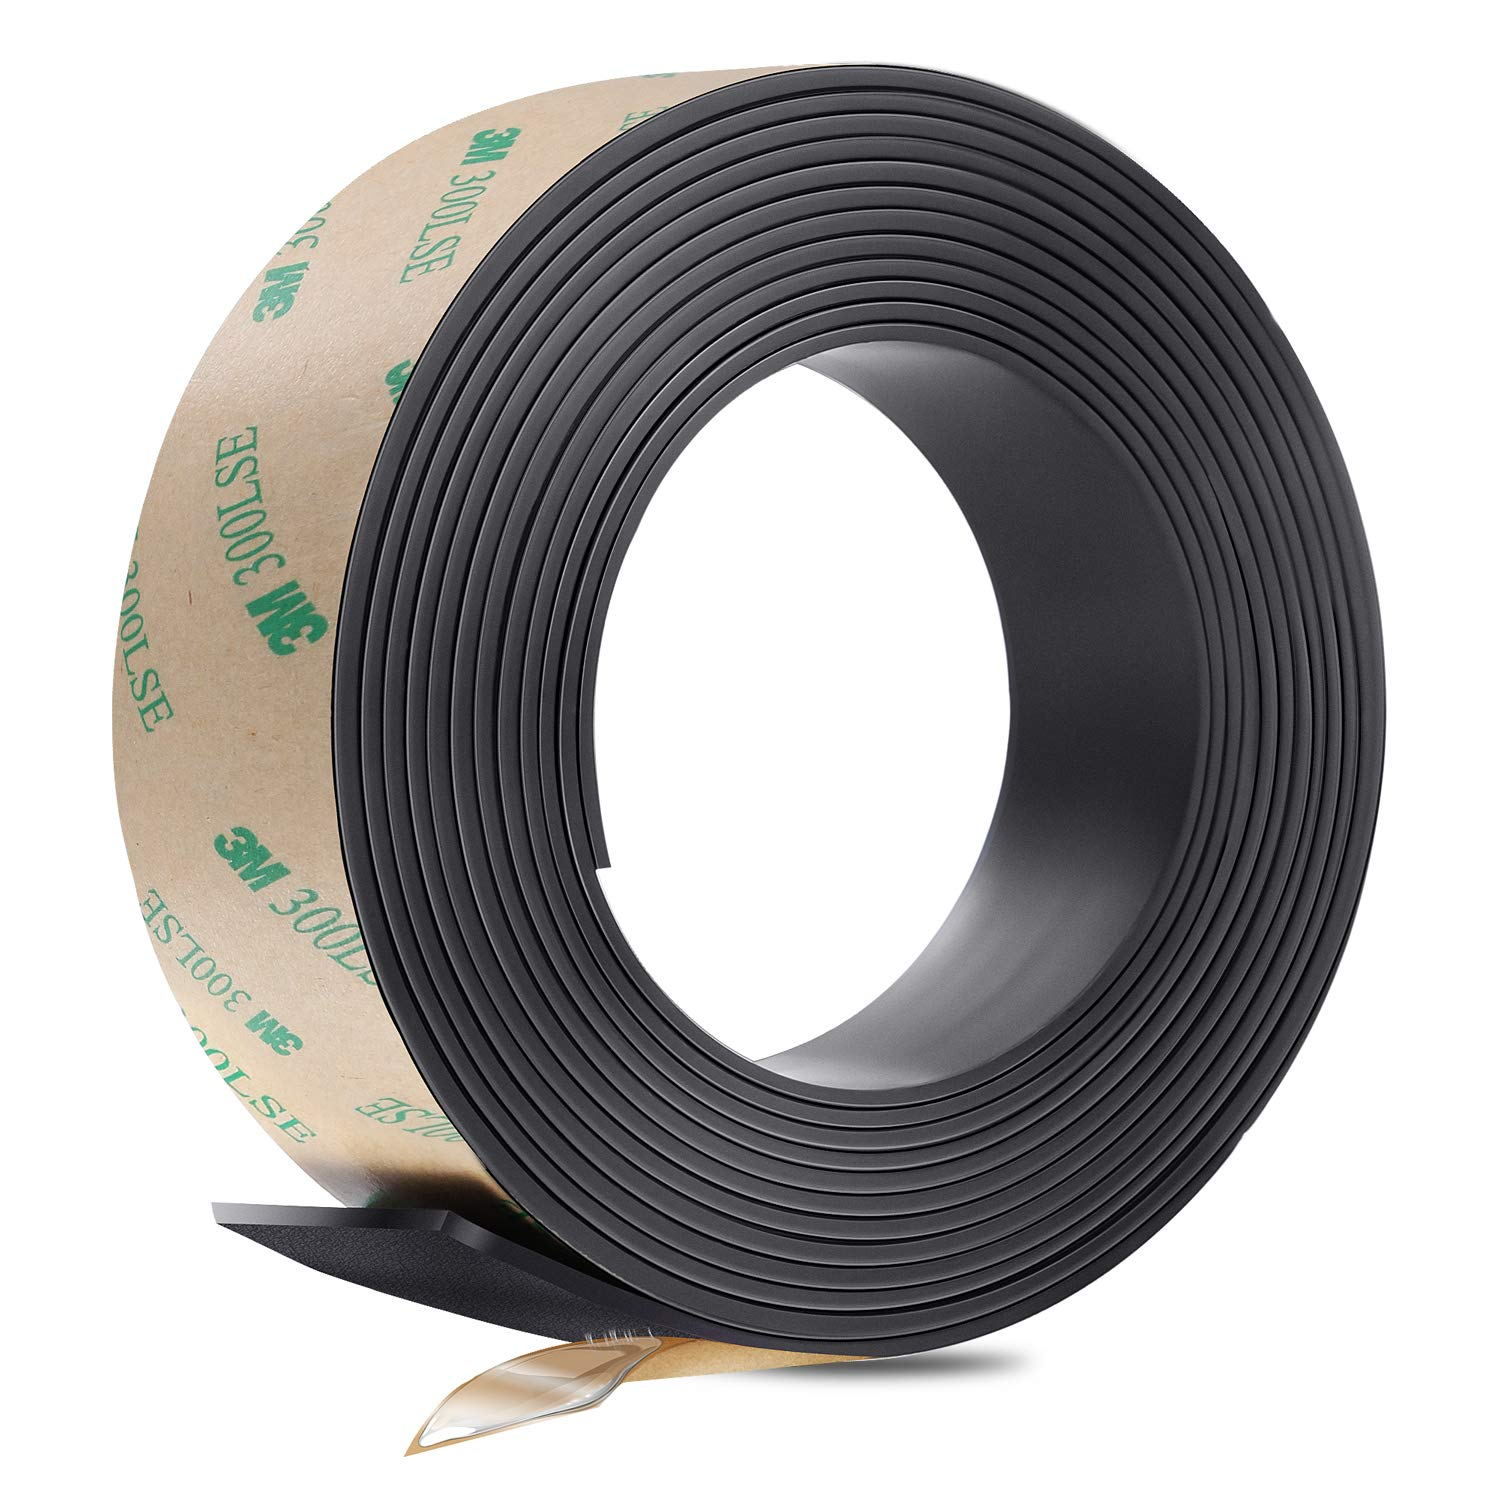 Gimars Anisotropic Strong Magnet Magnetic Strip Tape with Prime Sticky Adhesive - Ideal 1 Inch x 10 Feet Magnetic Roll for Craft and DIY Projects